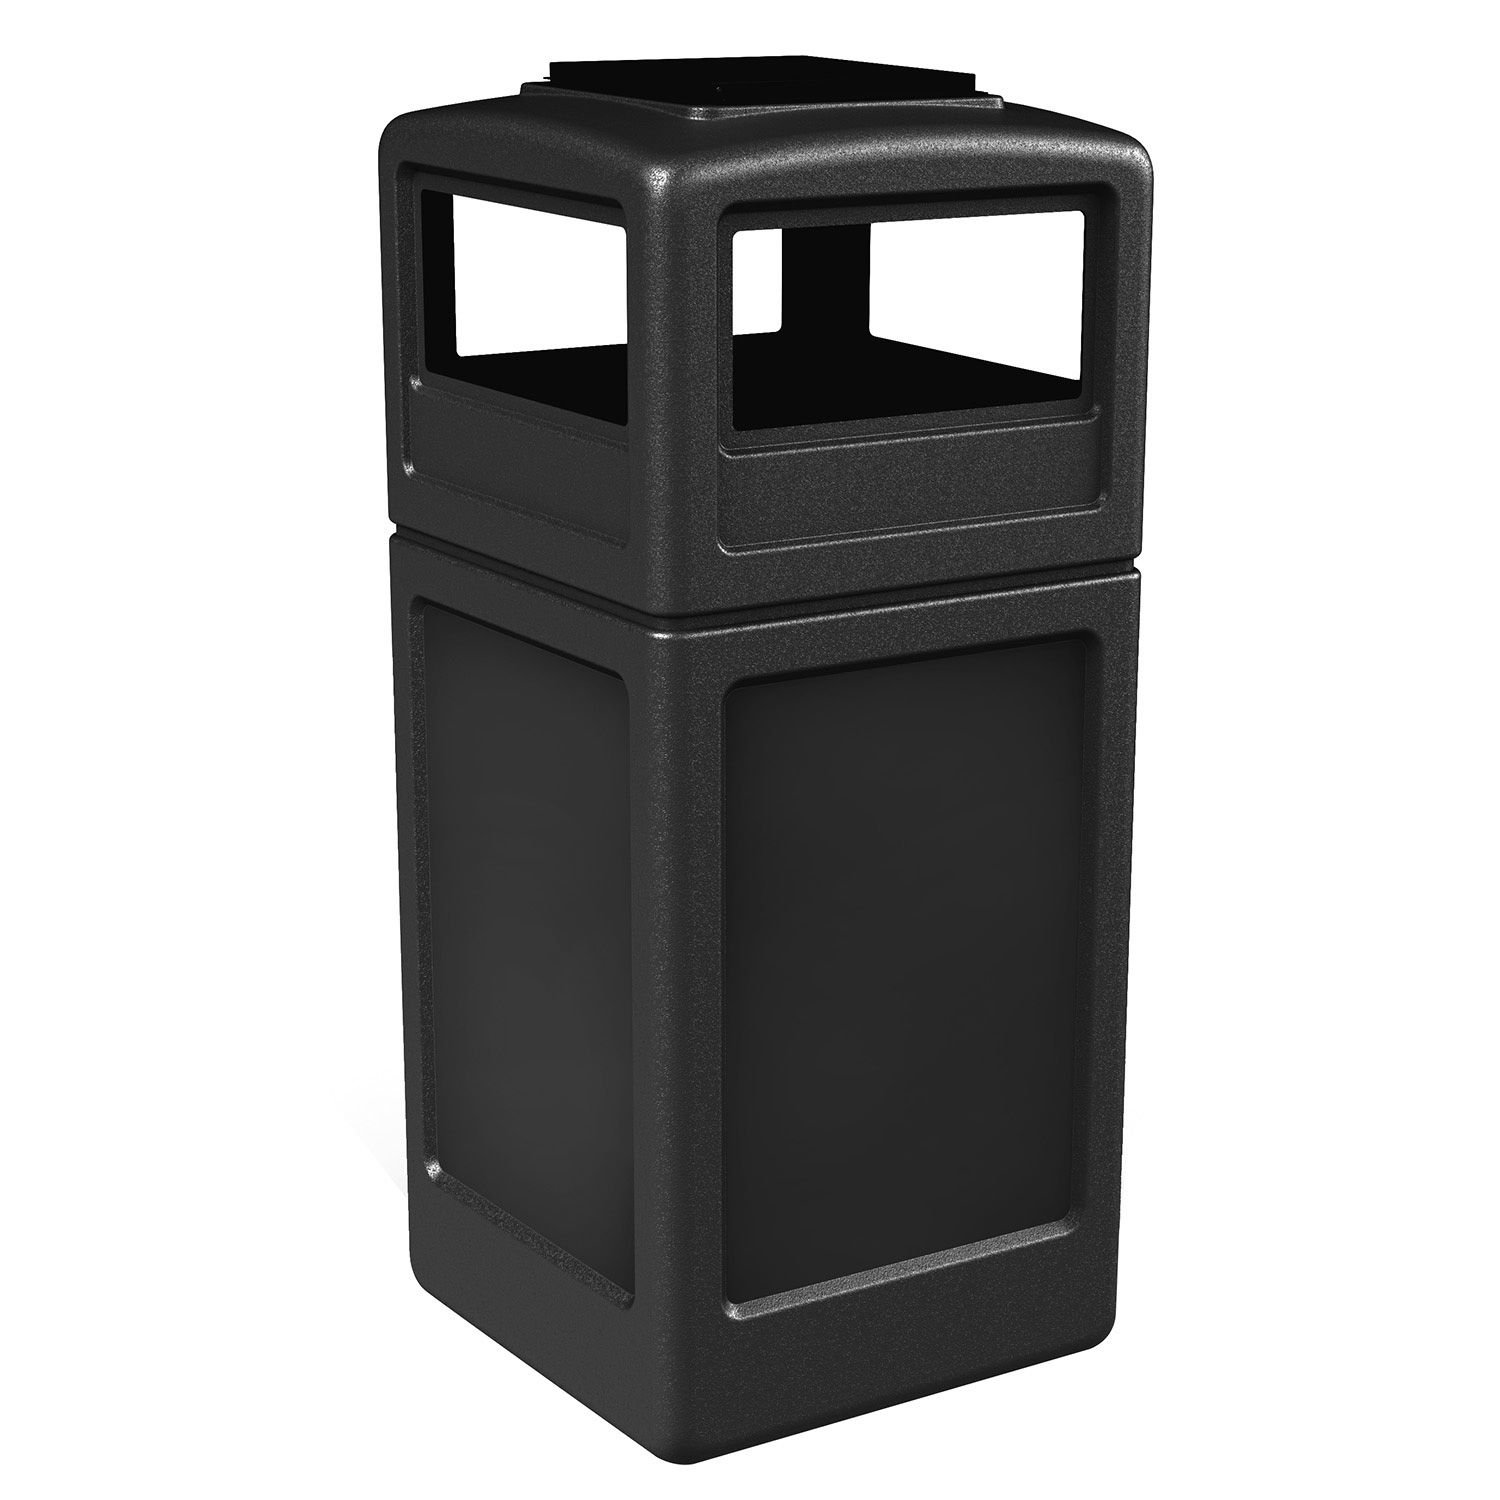 Waste Container w/ Ashtray Lid, Polyethylene, Garbage Can, Trash, Litter, 42-gal (Black) by RecyclePro